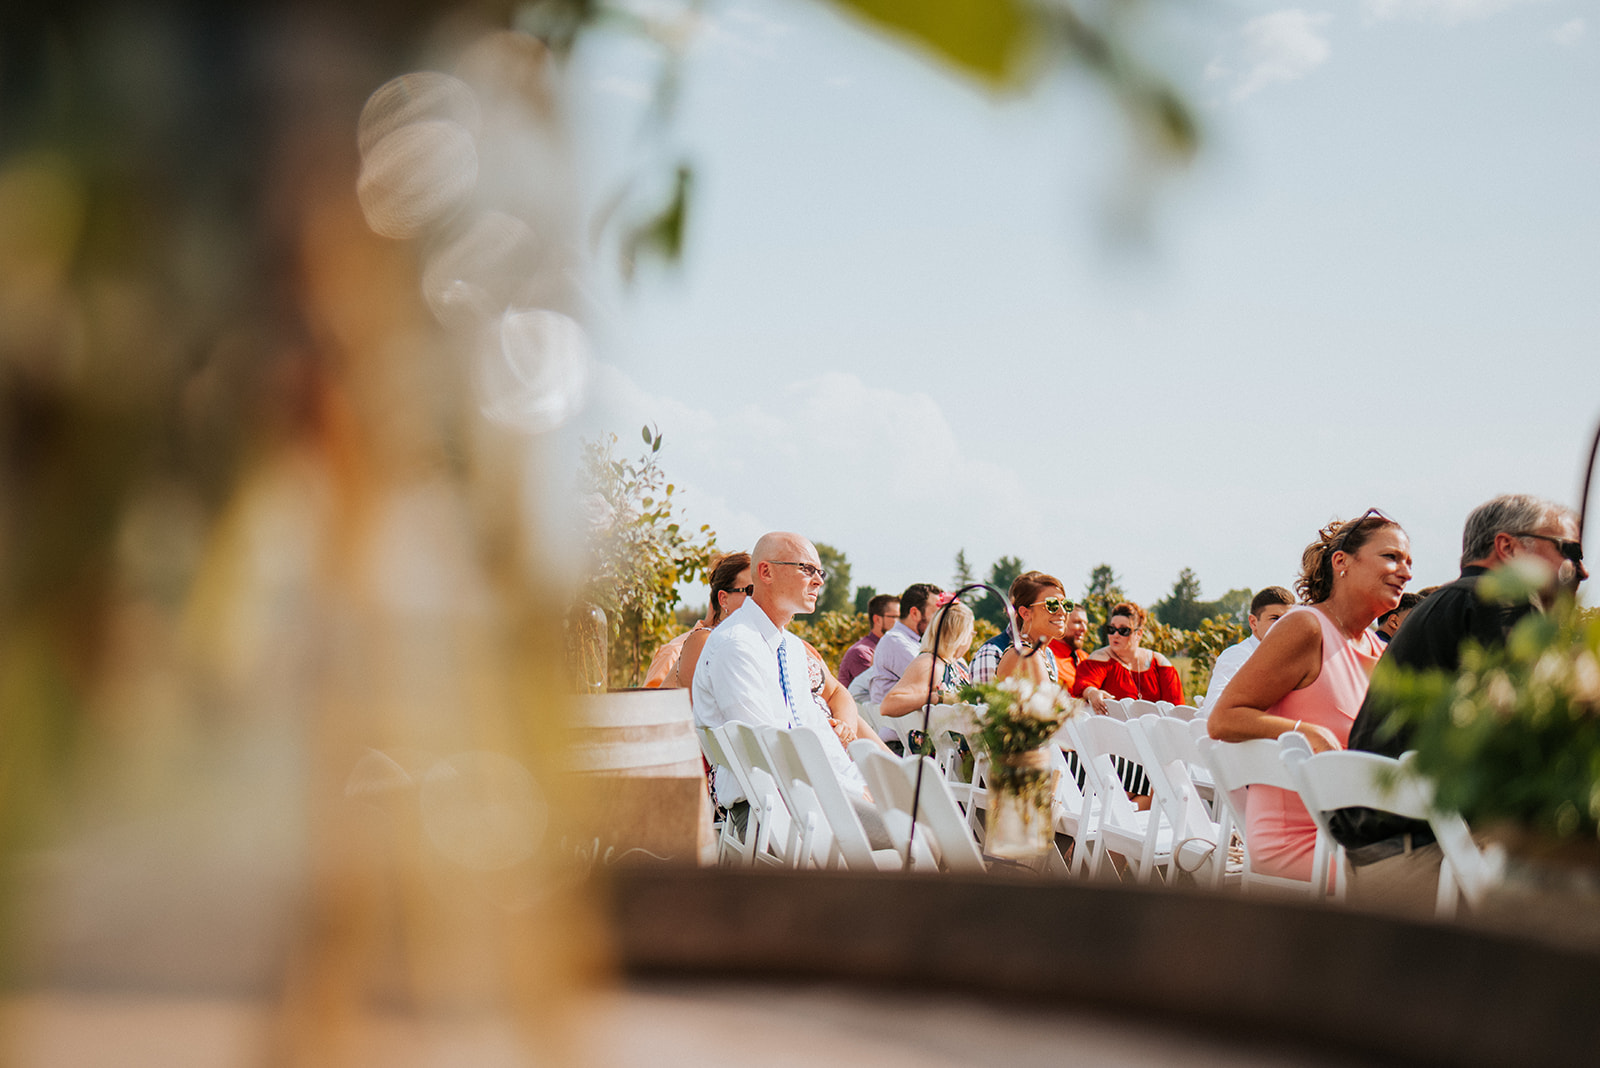 overthevineswisconsinwedding_0580.jpg